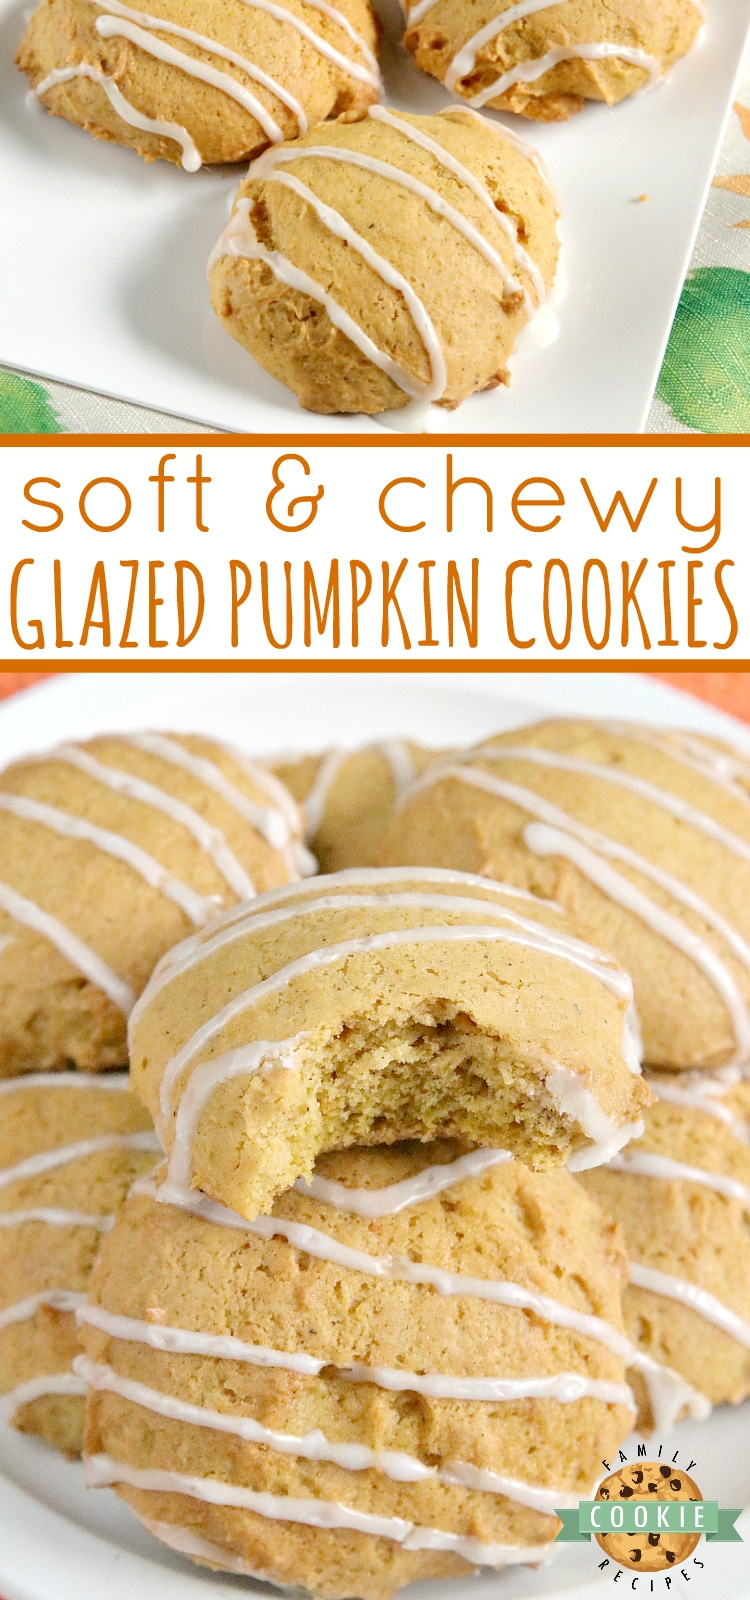 Glazed Pumpkin Cookies are soft and chewy and packed with pumpkin, nutmeg and cinnamon. This delicious pumpkin cookie recipe is easy to make and is even more delicious with the simple vanilla glaze drizzled on top. via @familycookierecipes